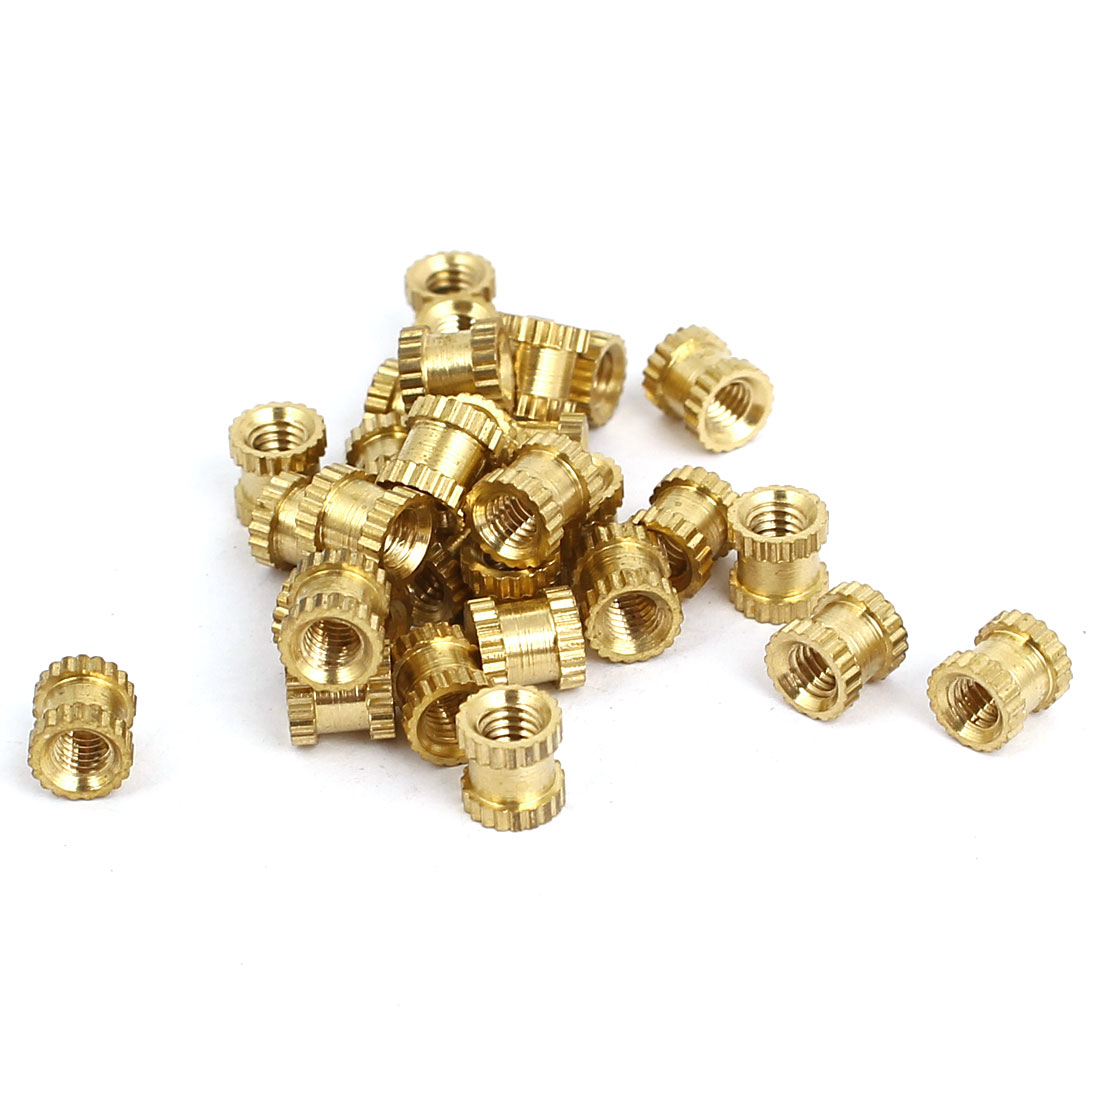 M3x5mmx5mm Female Threaded Brass Knurled Insert Embedded Nuts Gold Tone 30pcs